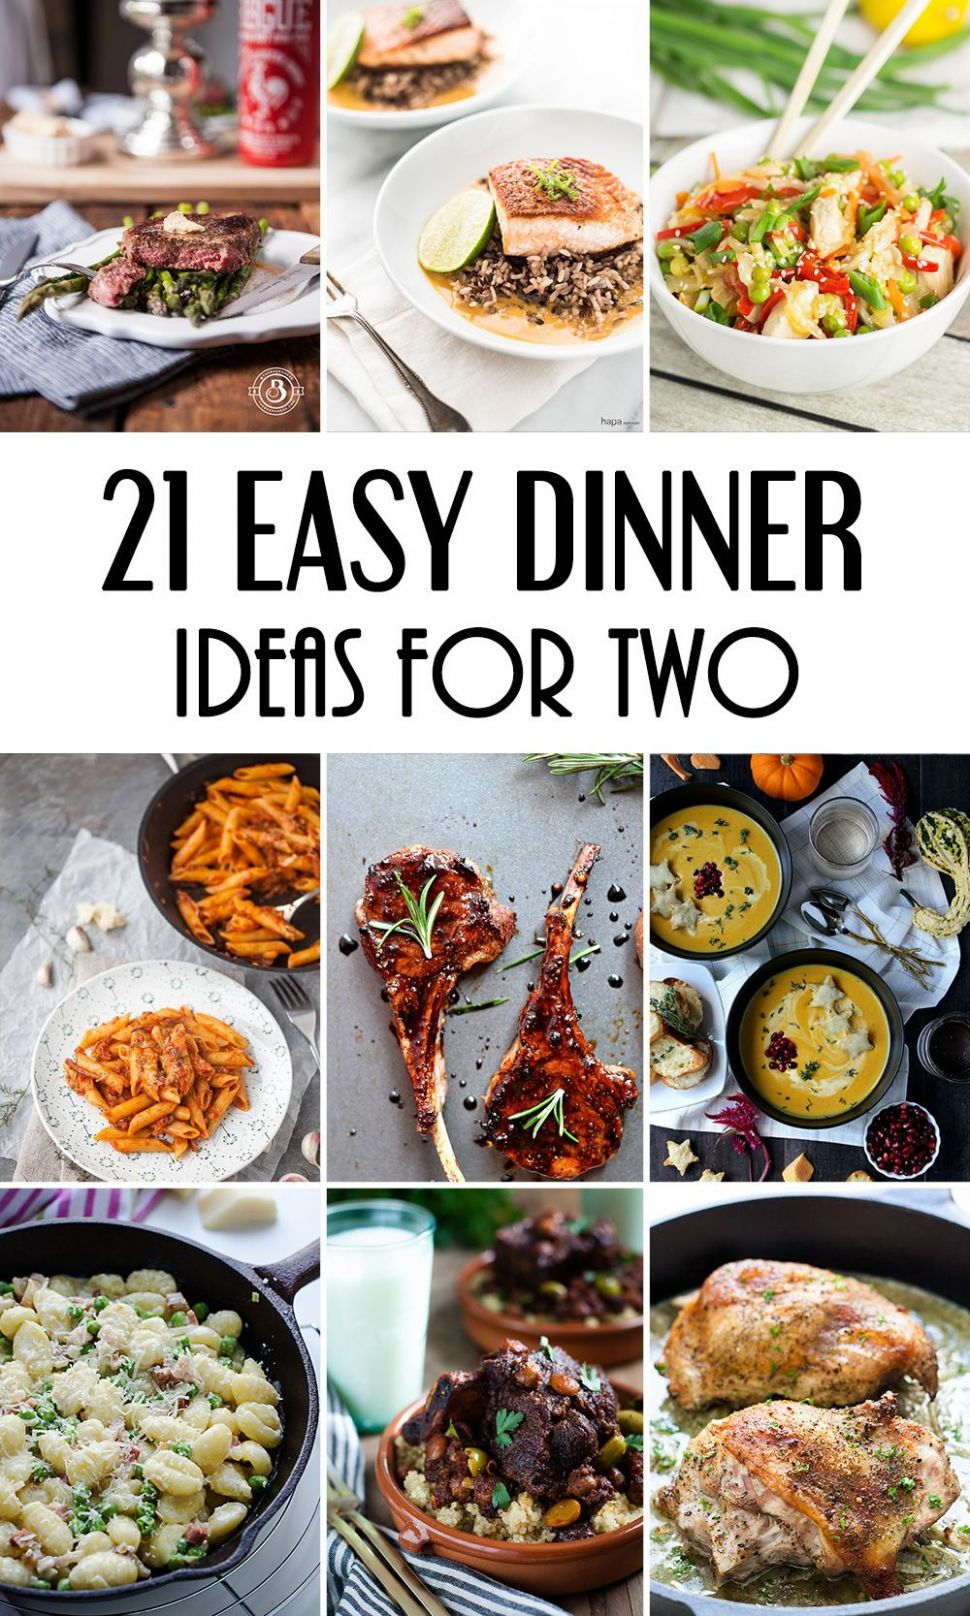 12 Easy Dinner Ideas For Two That Will Impress Your Loved One ..